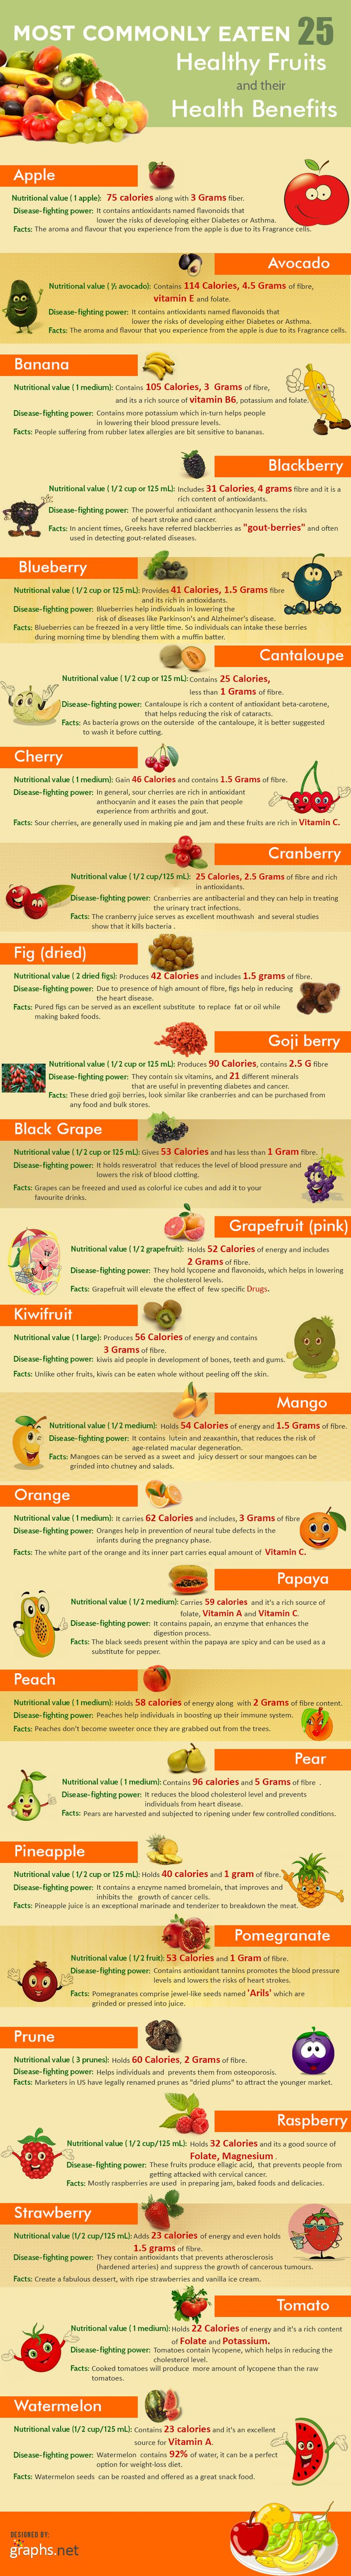 Most Commonly Eaten 25 Healthy Fruits and their Health Benefits Infographic